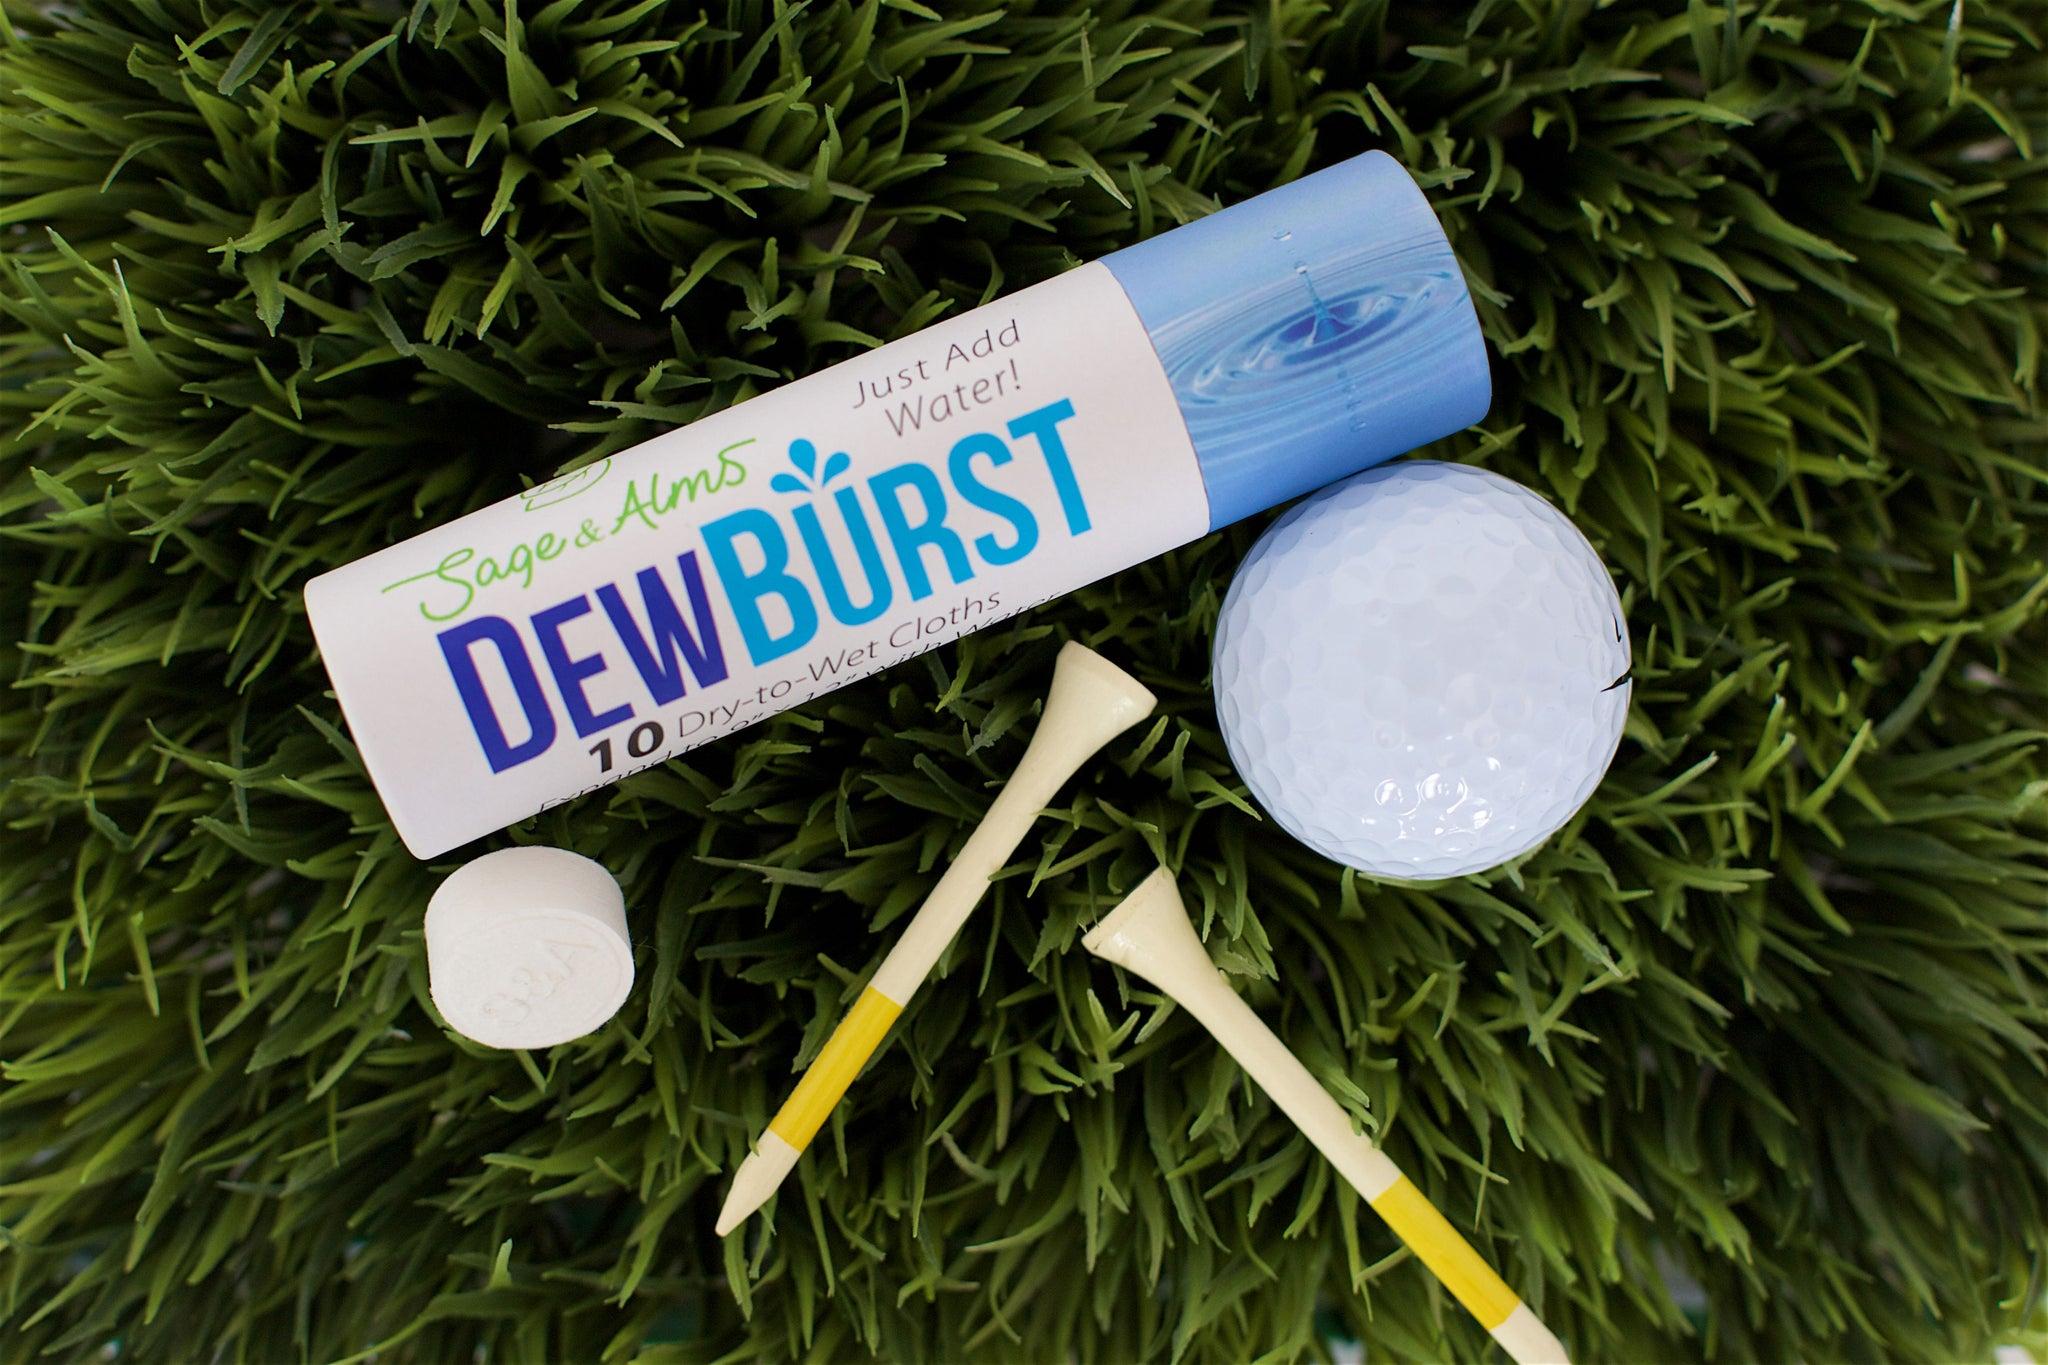 Retail Priicng - 1 Tube | 10 Cloths | $2.40 Per Tube | DewBurst